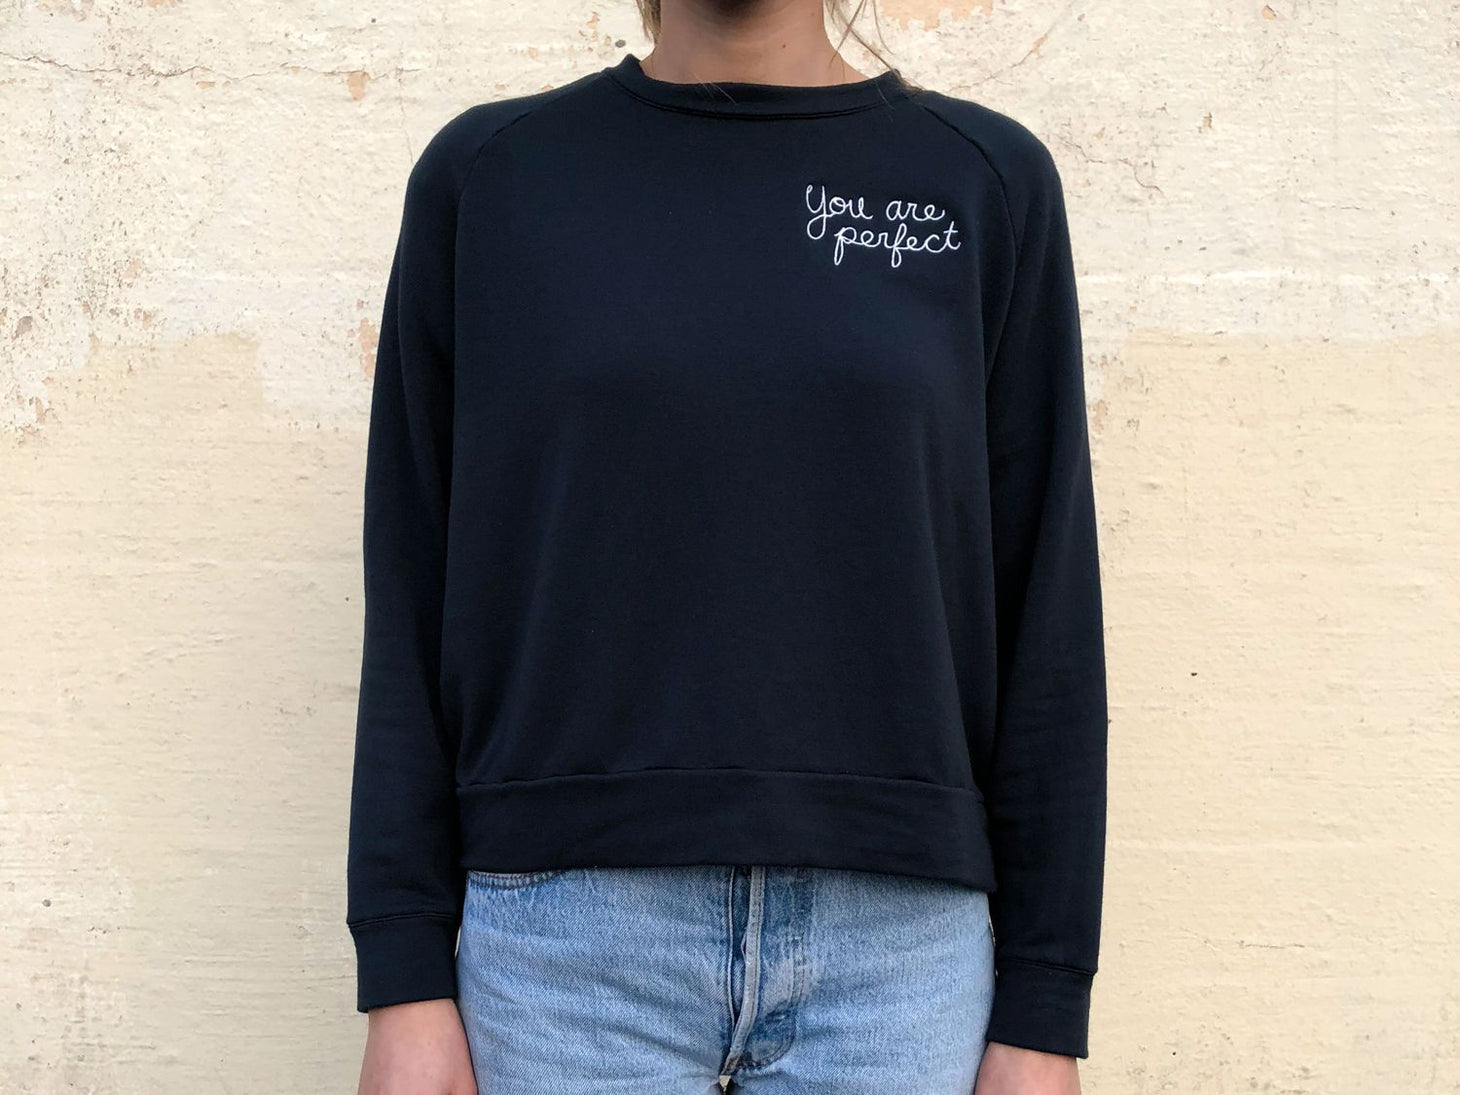 You are Perfect Sweatshirt, [product-type] - FREDA SALVADOR Power Shoes for Power Women